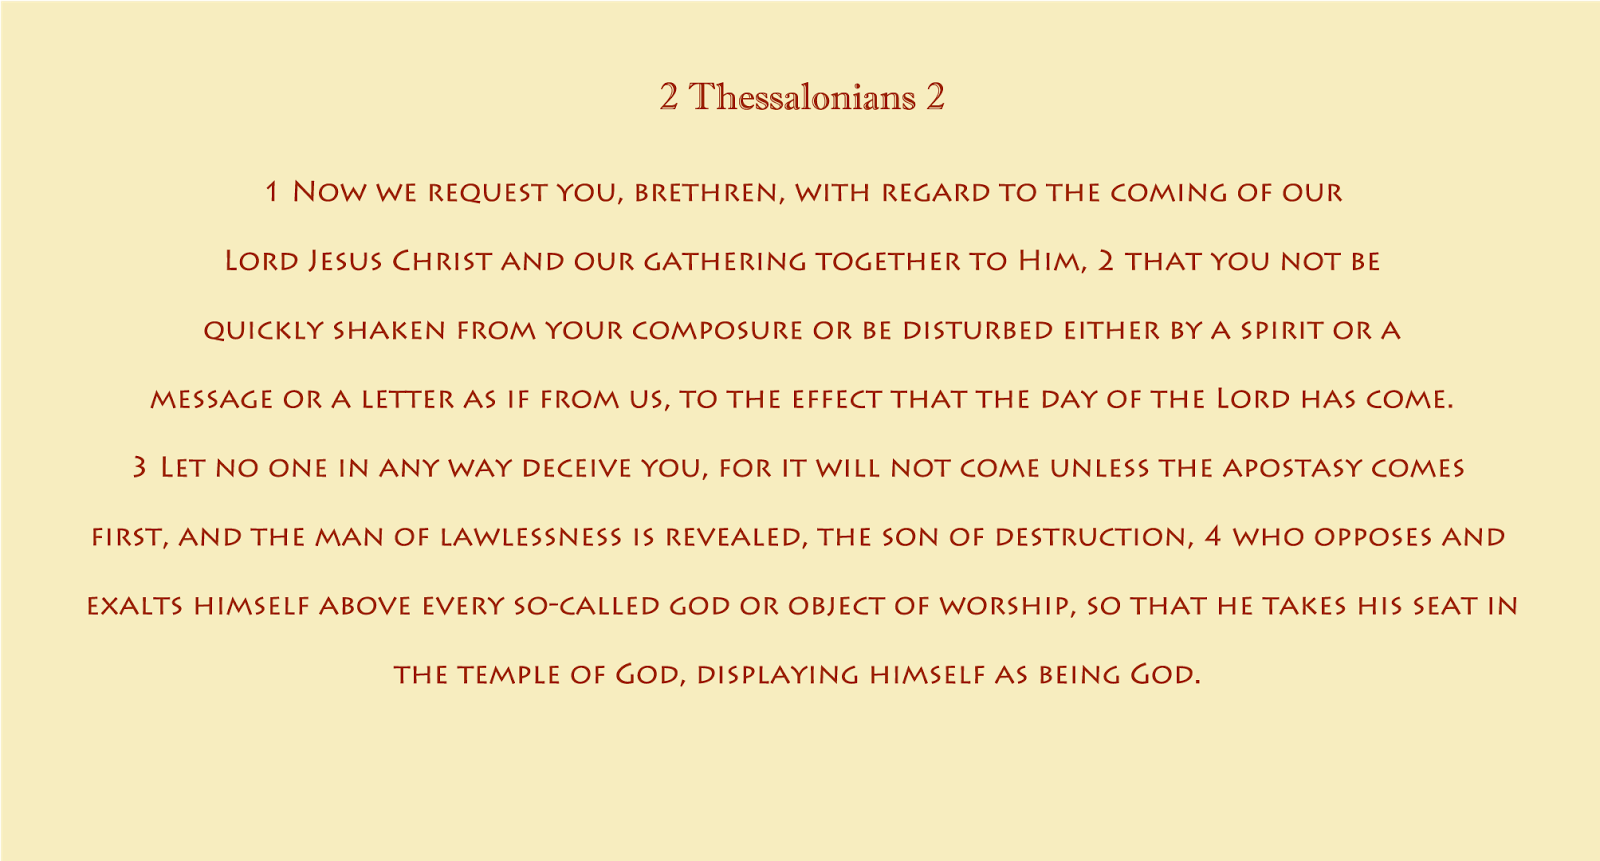 2 Thessalonians 2:1-4